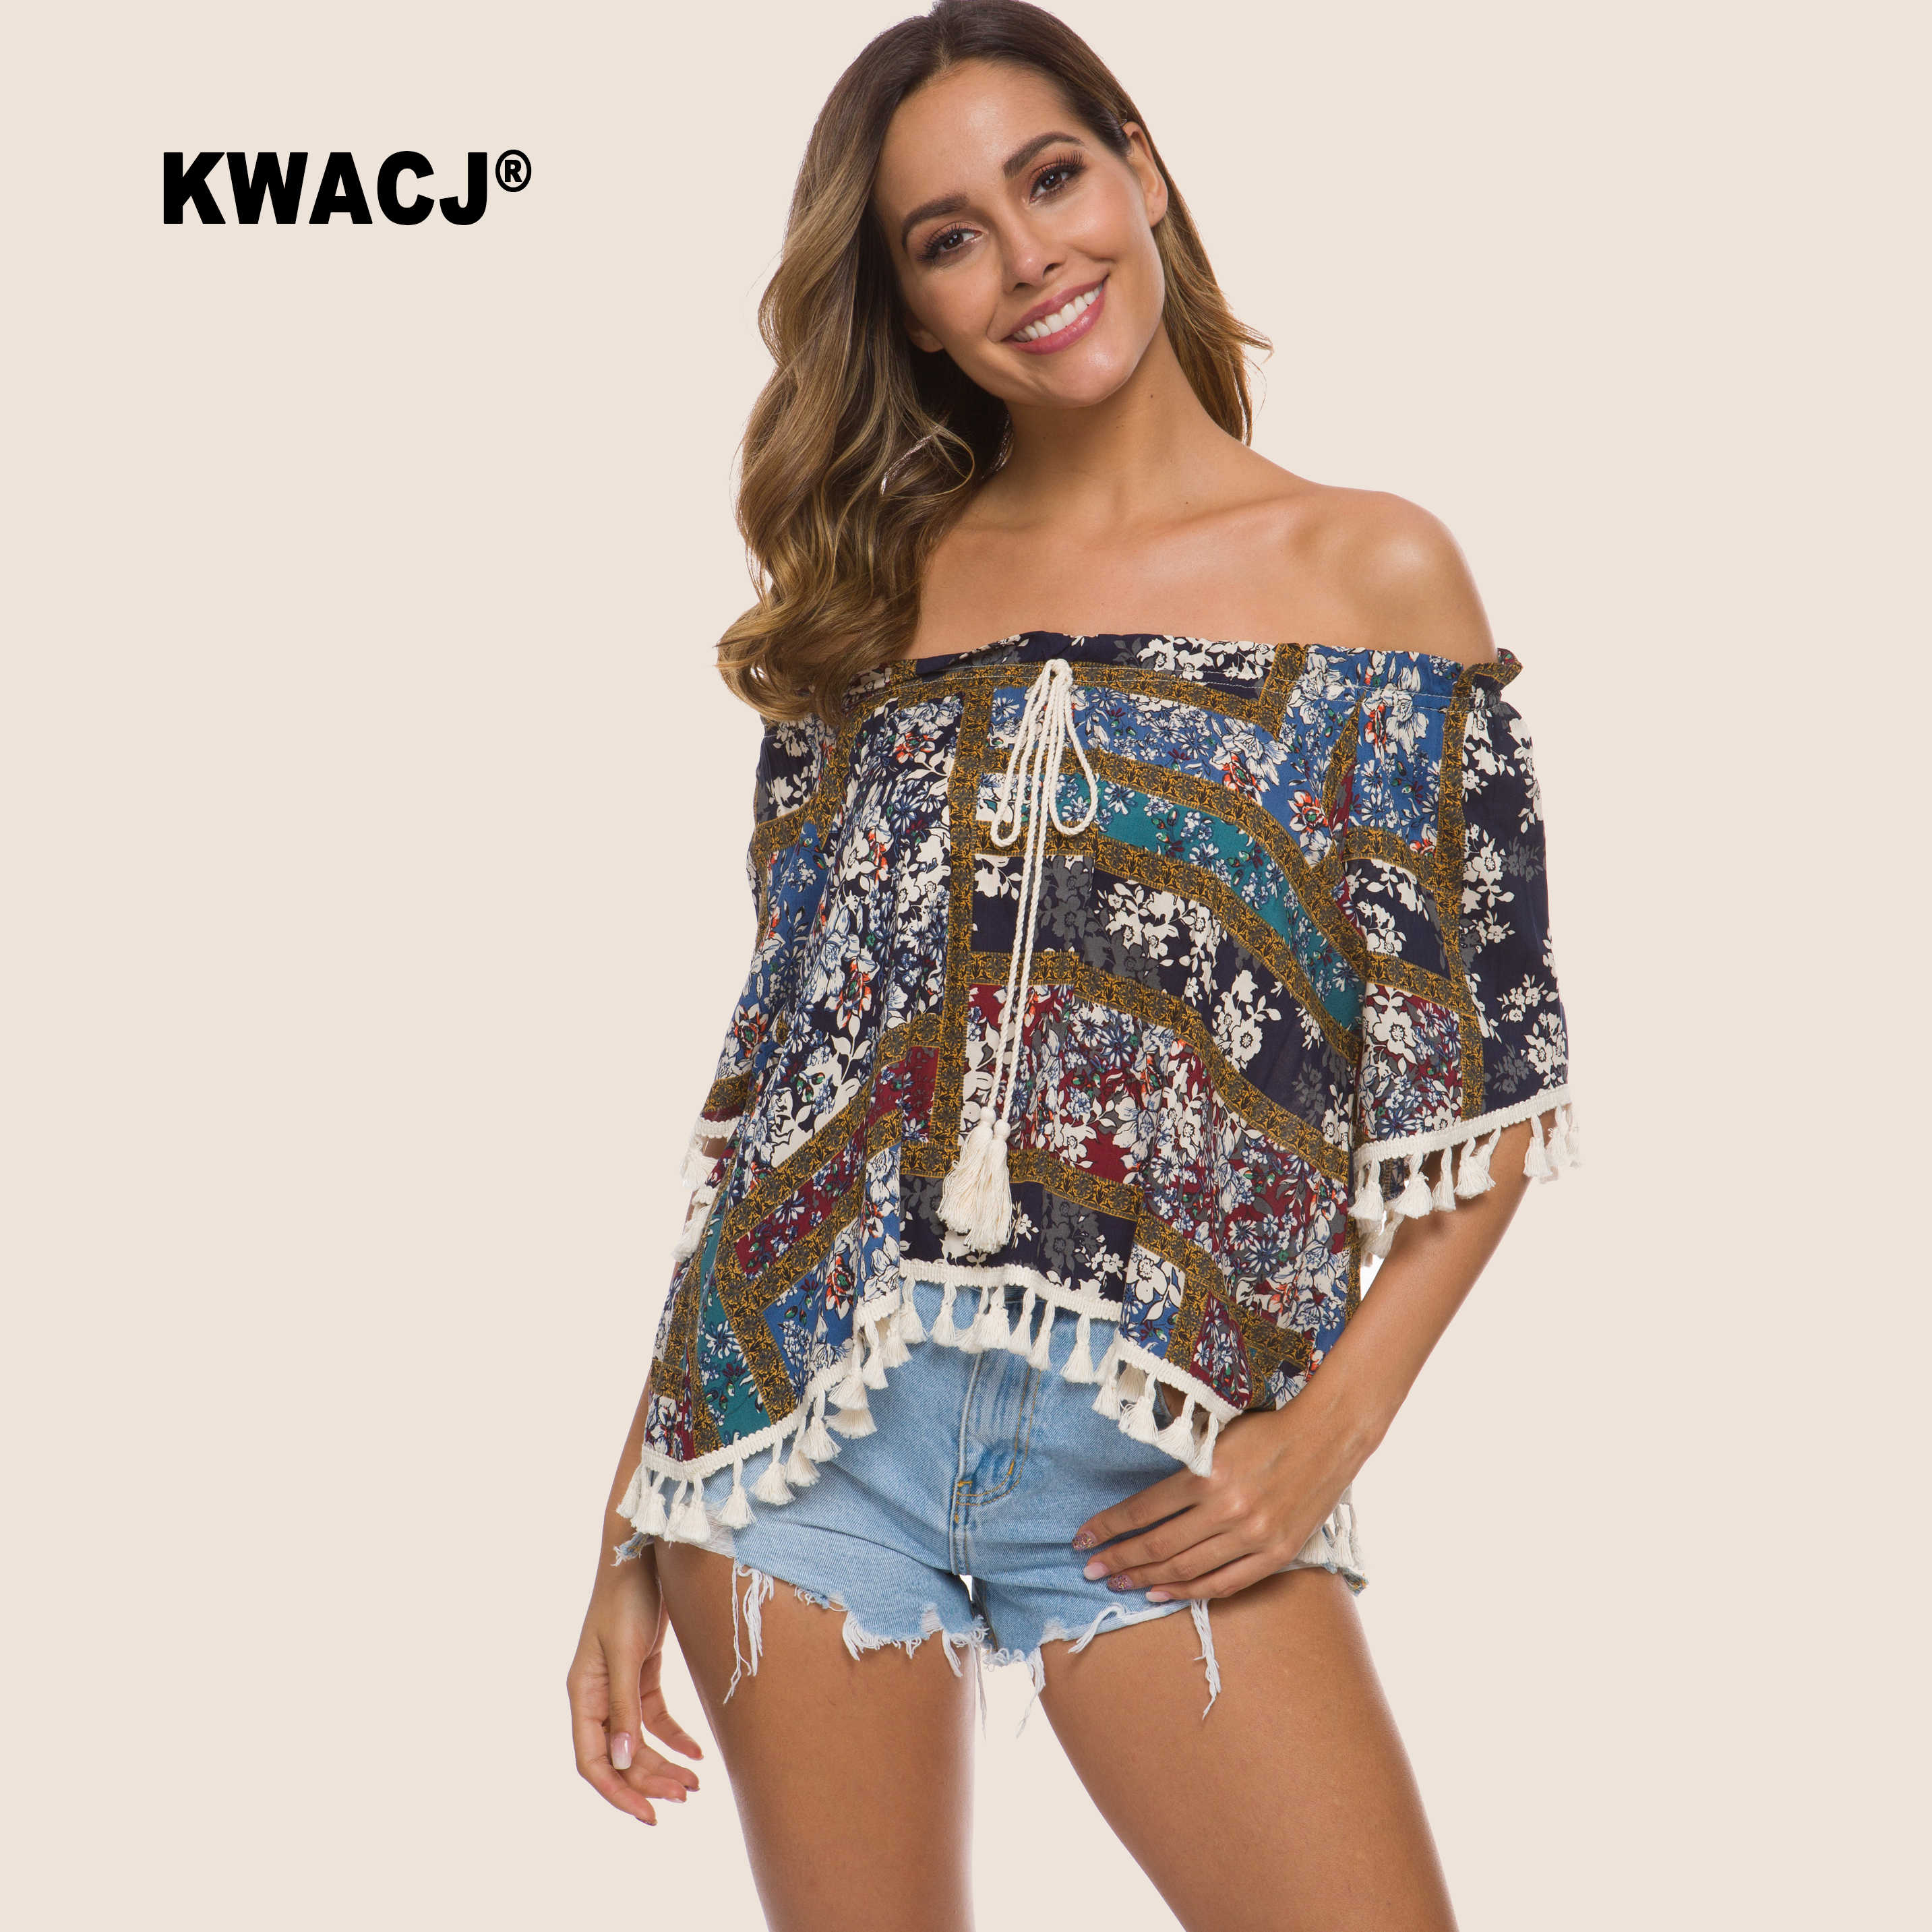 KWACJ Off Shoulder Top Tassel Split Hem Blouse Women Boho Clothing Short Sleeve Summer Sexy Corp multicolour Tops Becah Casual